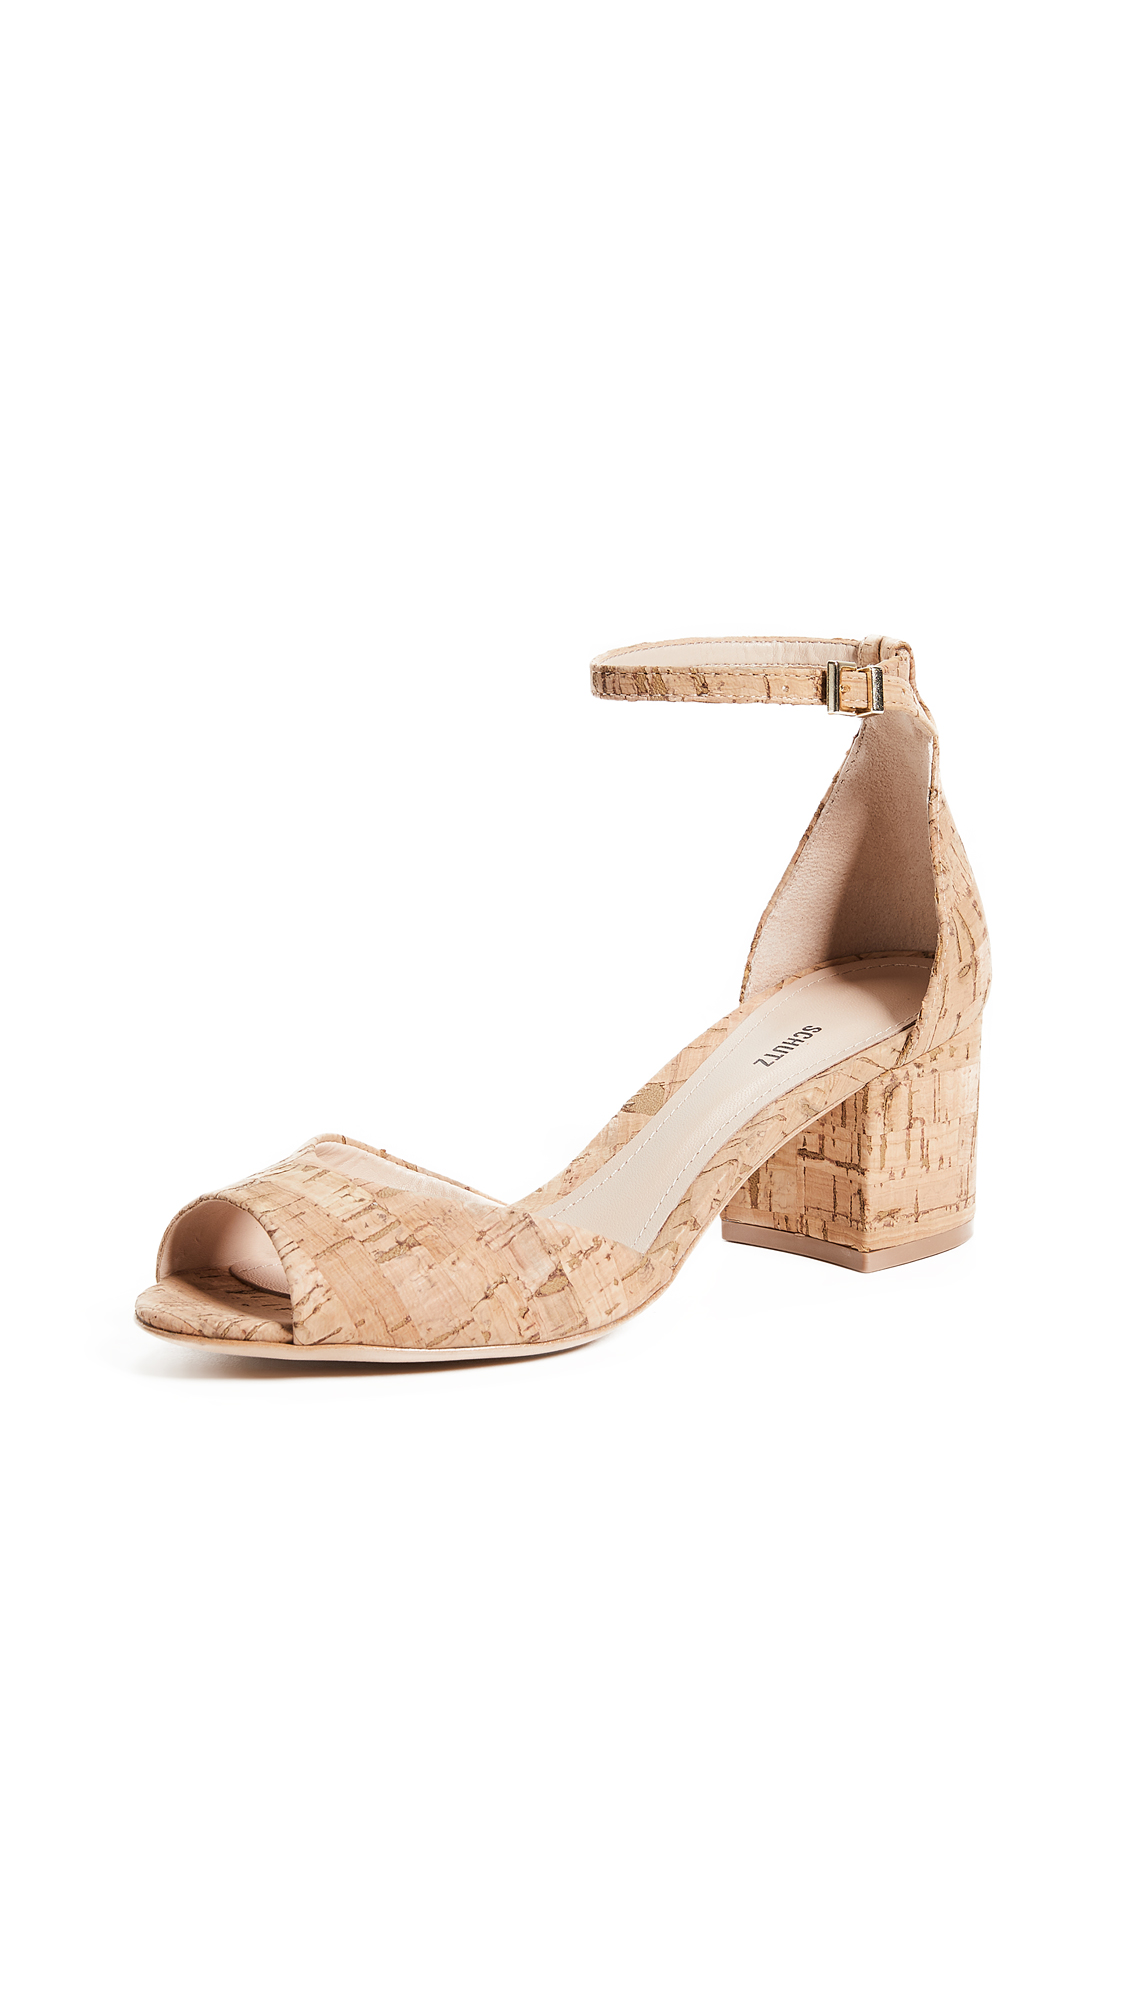 Schutz Roama Ankle Strap Sandals - Natural